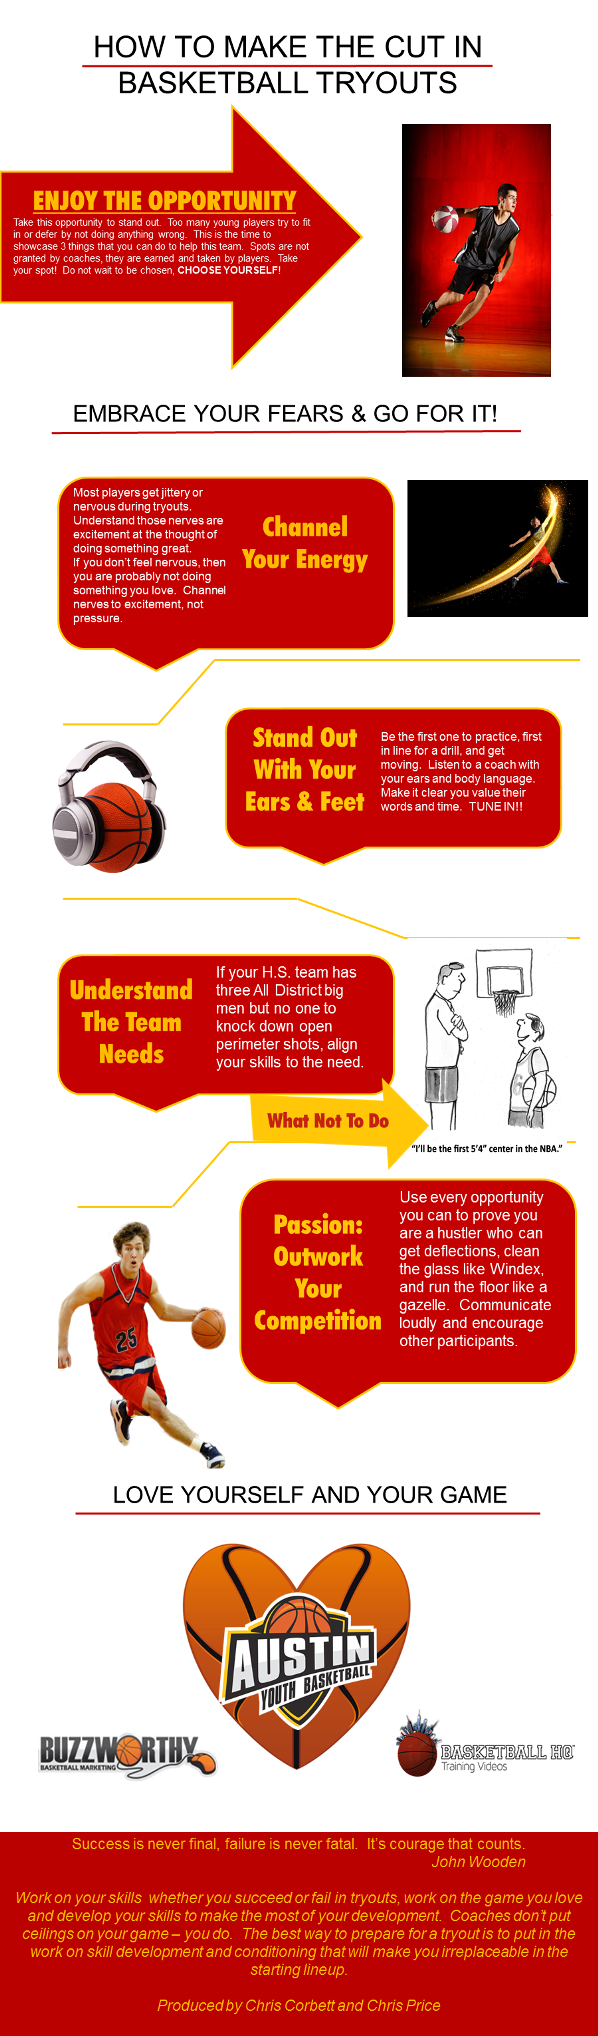 Austin Basketball Tryouts Infographic